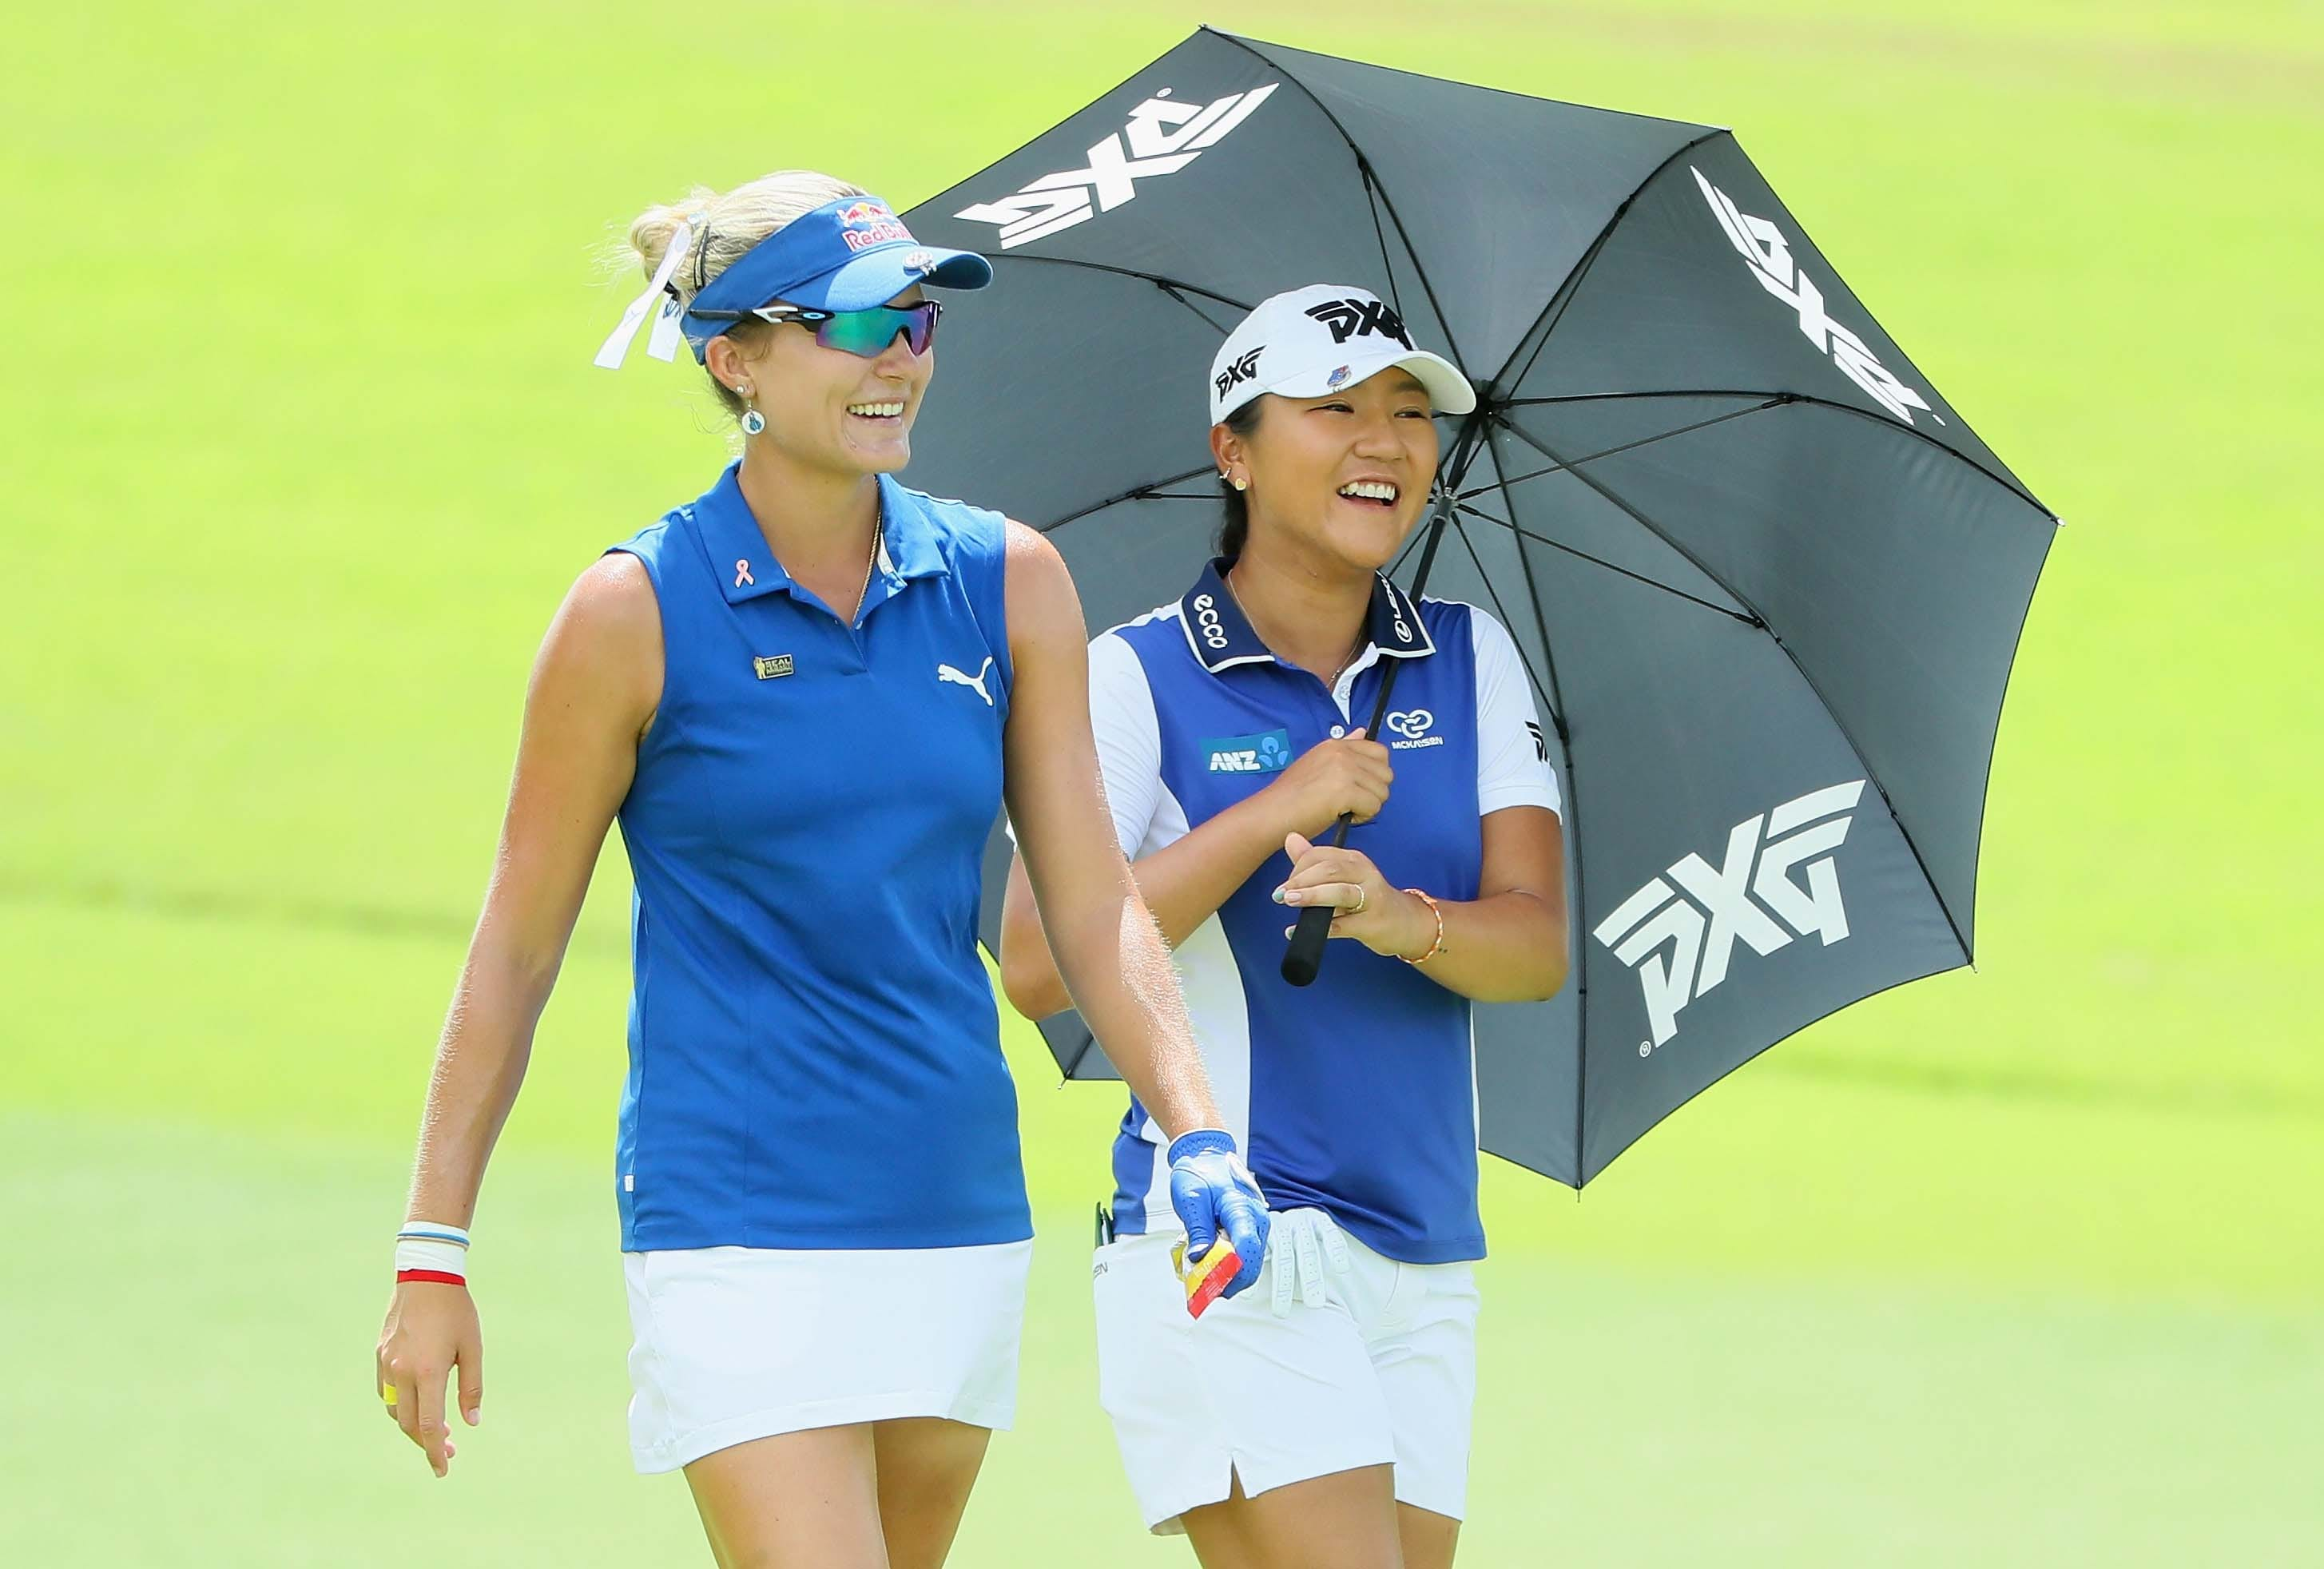 Lexi Thompson and Lydia Ko